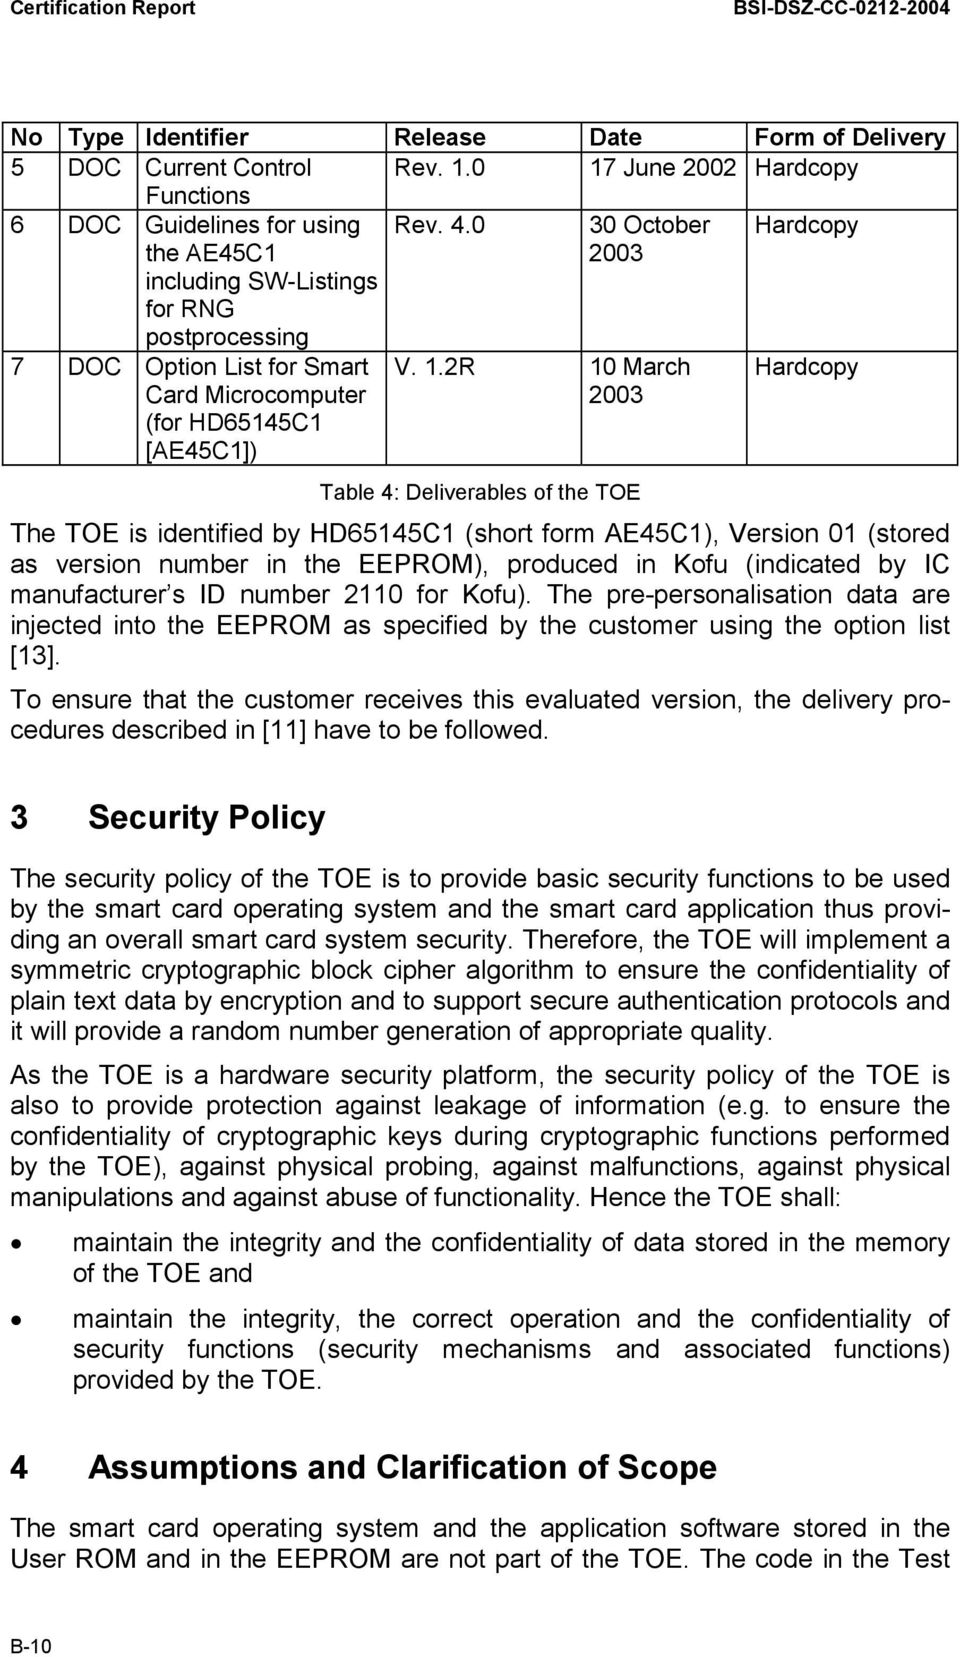 0 30 October 2003 Hardcopy 7 DOC Option List for Smart Card Microcomputer (for HD65145C1 [AE45C1]) V. 1.